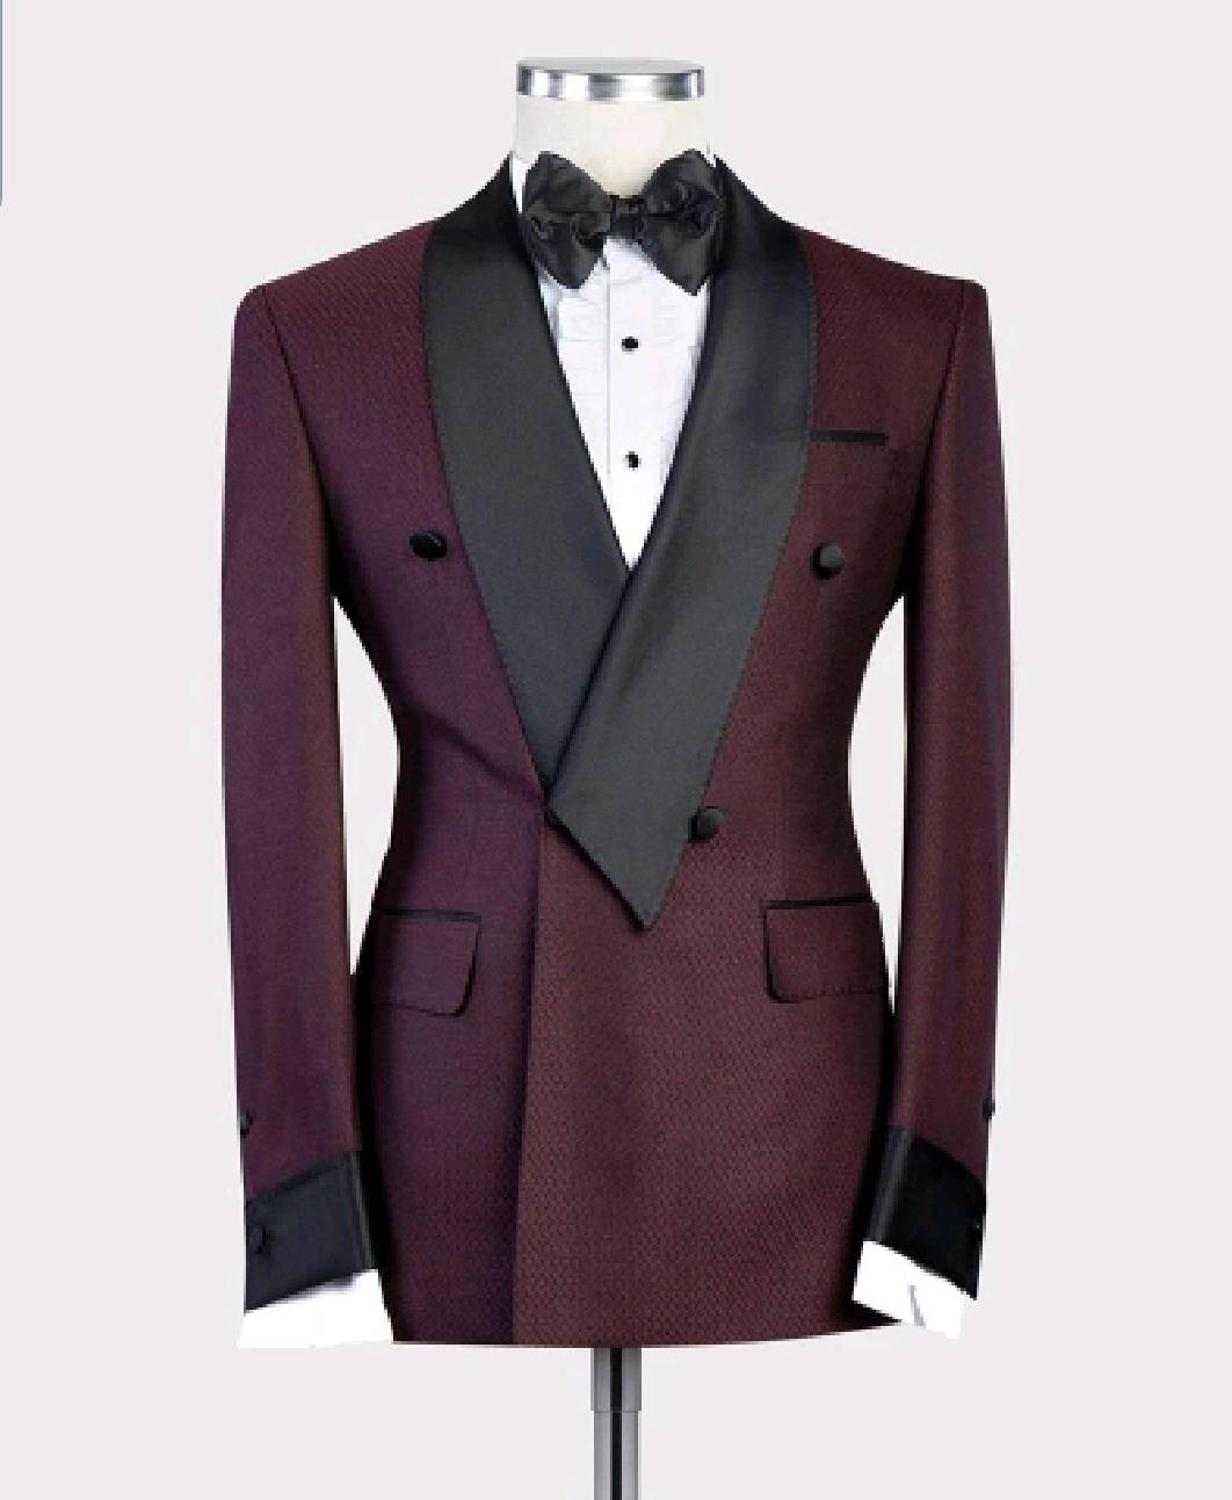 Pants Suits Jacket Wedding-Tuxedos Slim-Fit Burgundy Custom-Made Black Men's 2pieces